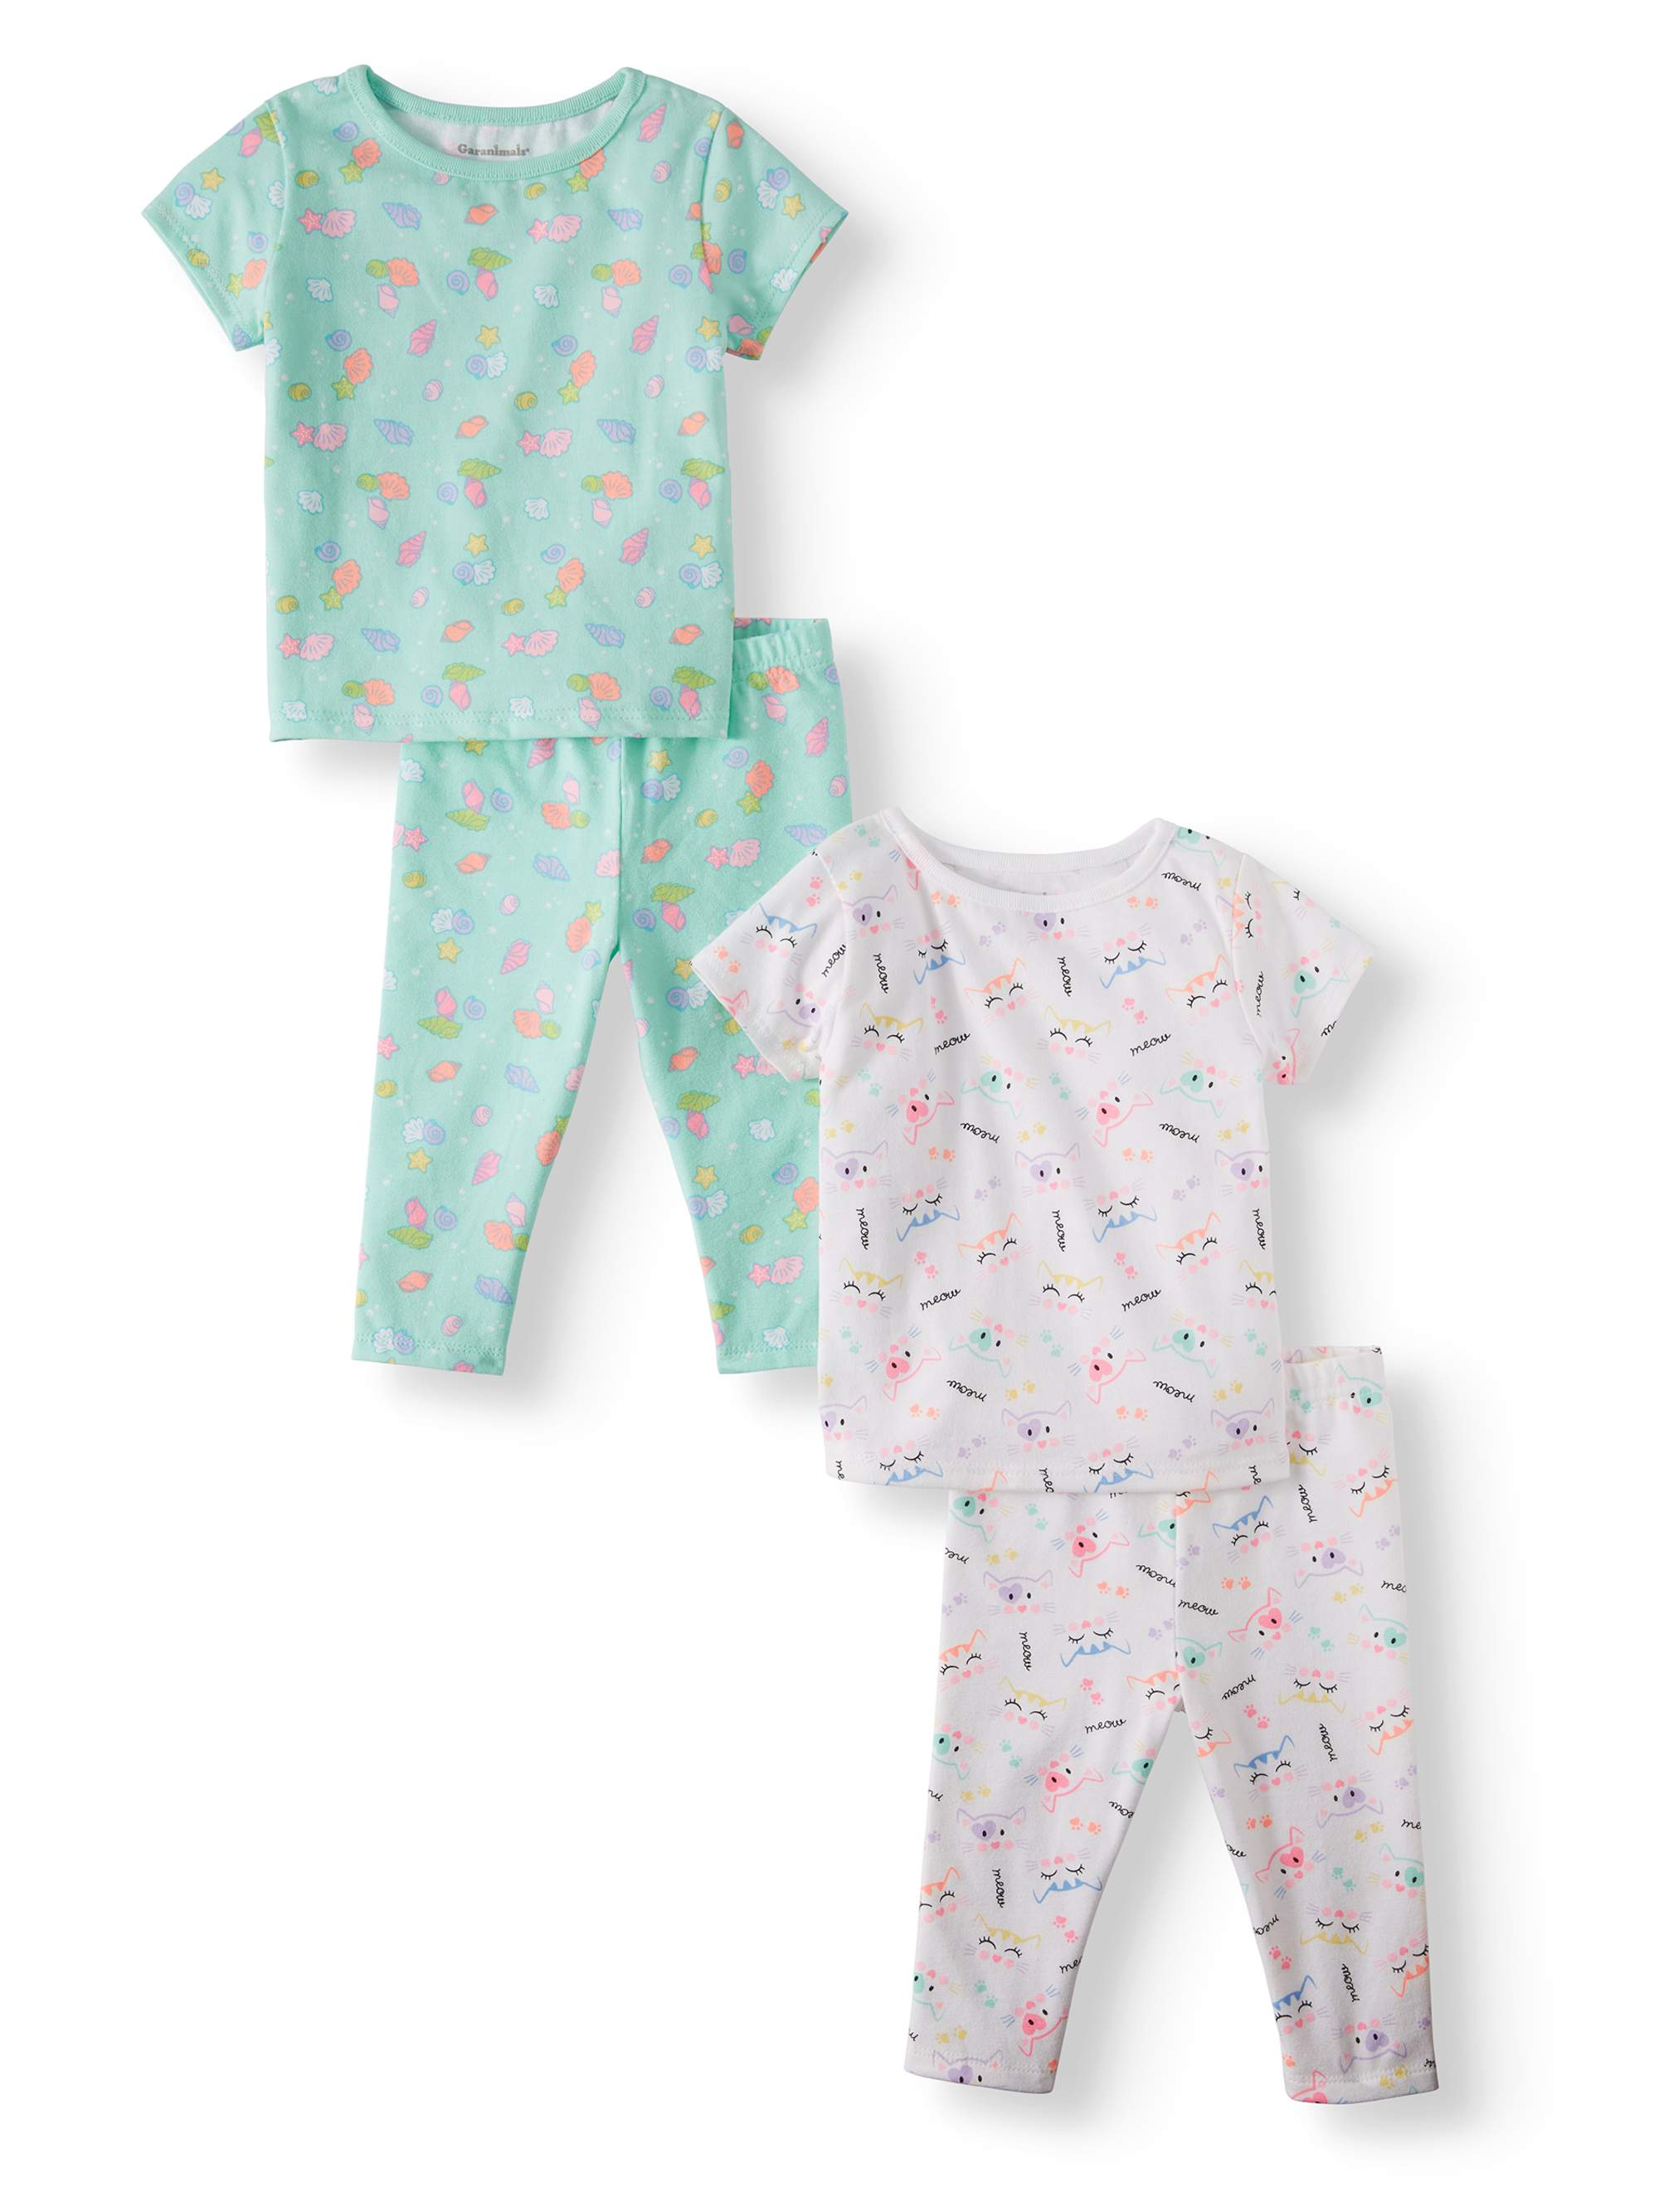 Mix & Match Print Tees & Leggings, 4pc Outfit Set (Baby Girls)